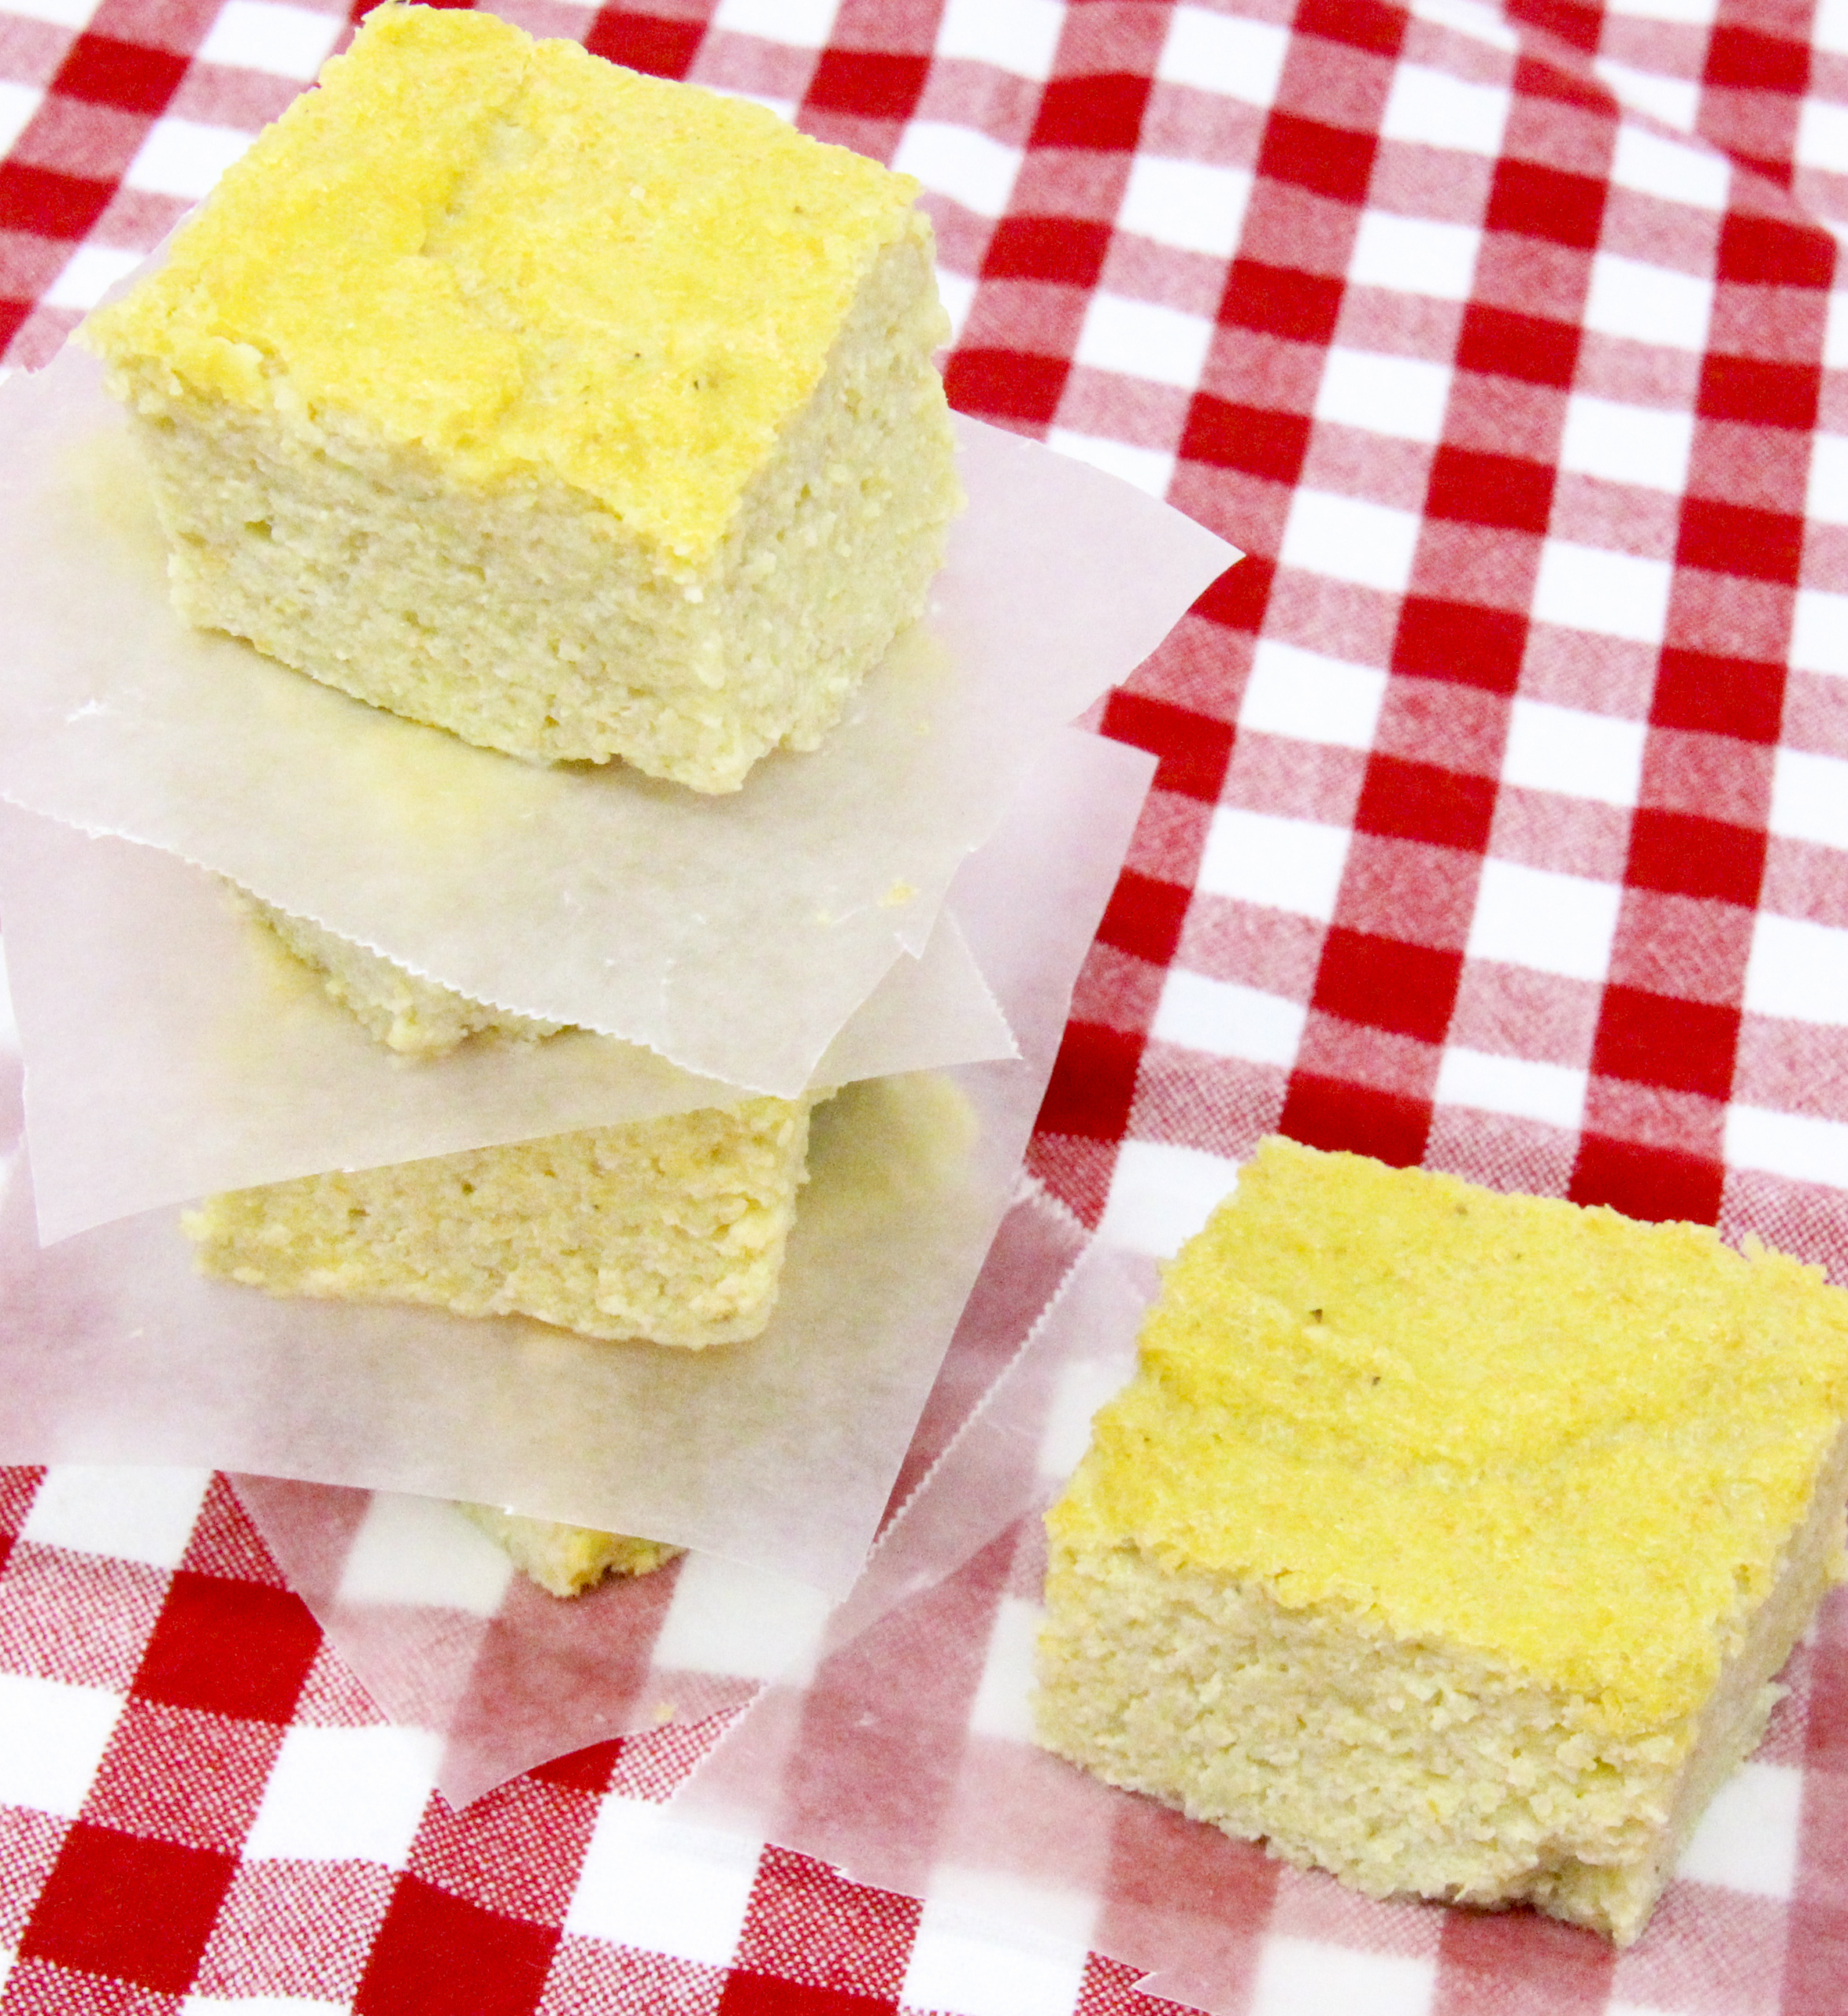 A Southern classic, Spoonbread is a delicious side dish. Whipped egg whites lighten the texture while milk provides a creamy base for the cornmeal. Recipe shared with permission granted by Julie Anne Lindsey, author of BURDEN OF POOF.